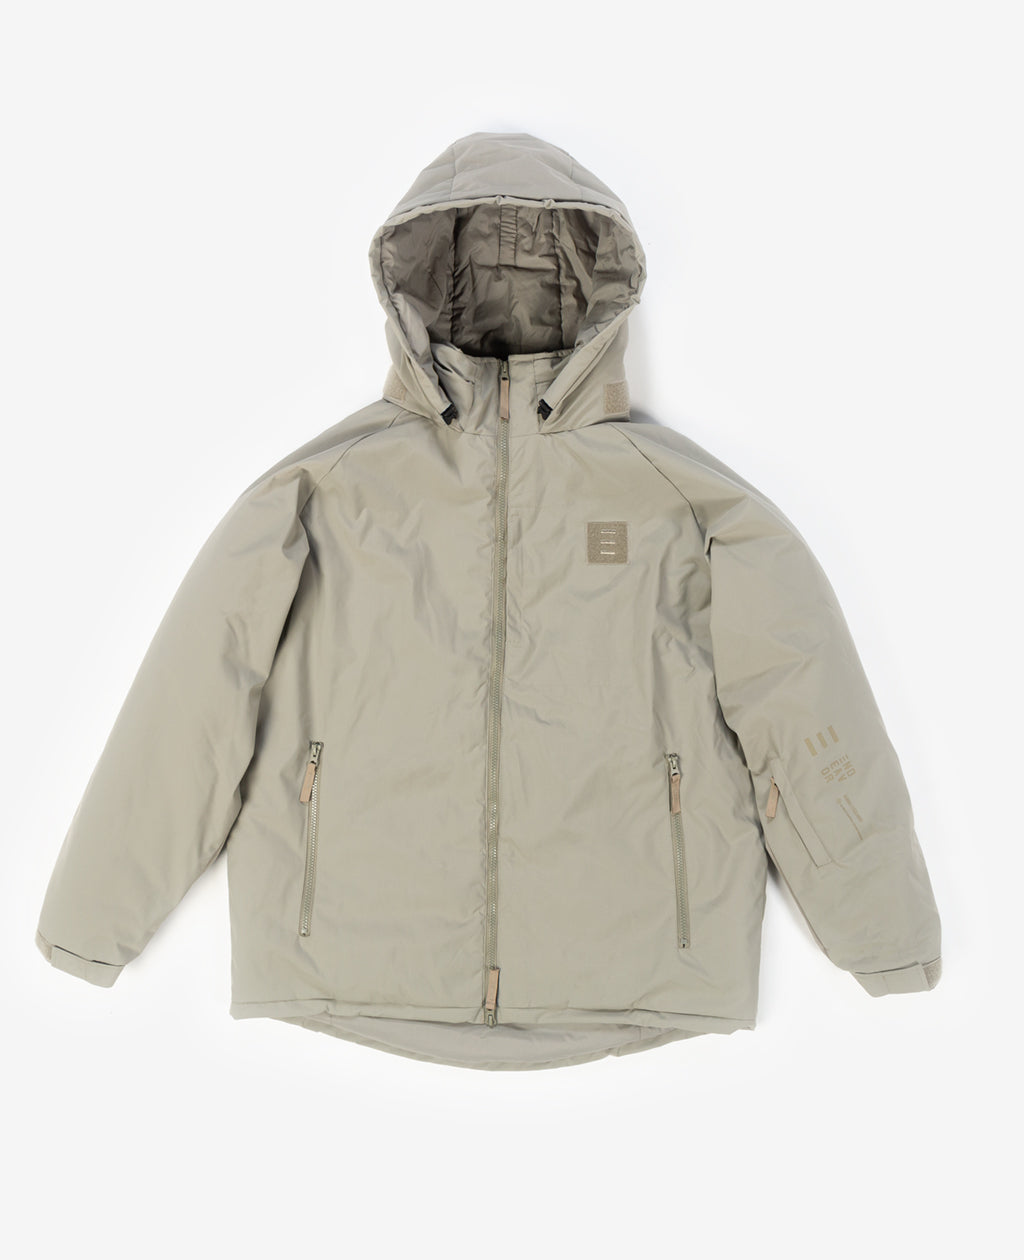 Endeavor Ranger Jacket